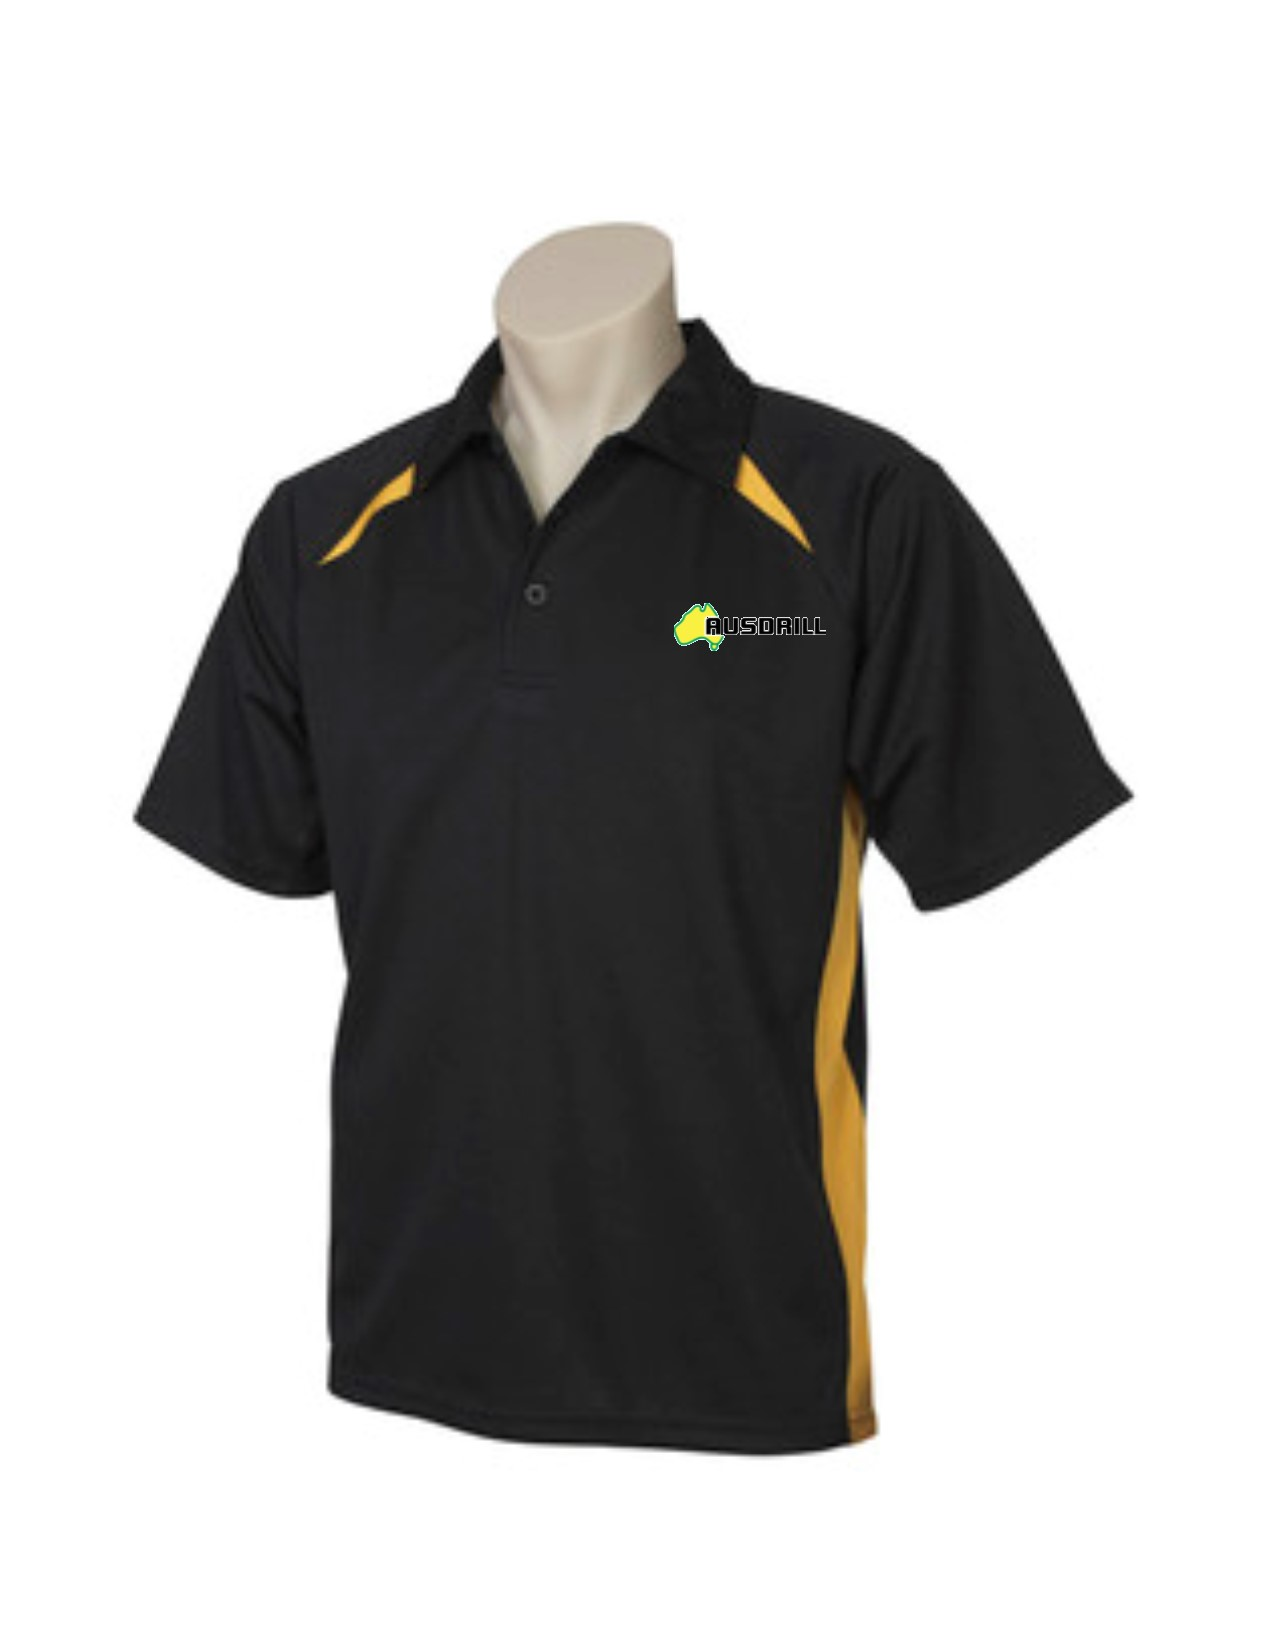 POLO MENS SPLICE BLACK/GOLD 2XL AUSDRILL LOGO LH CHEST